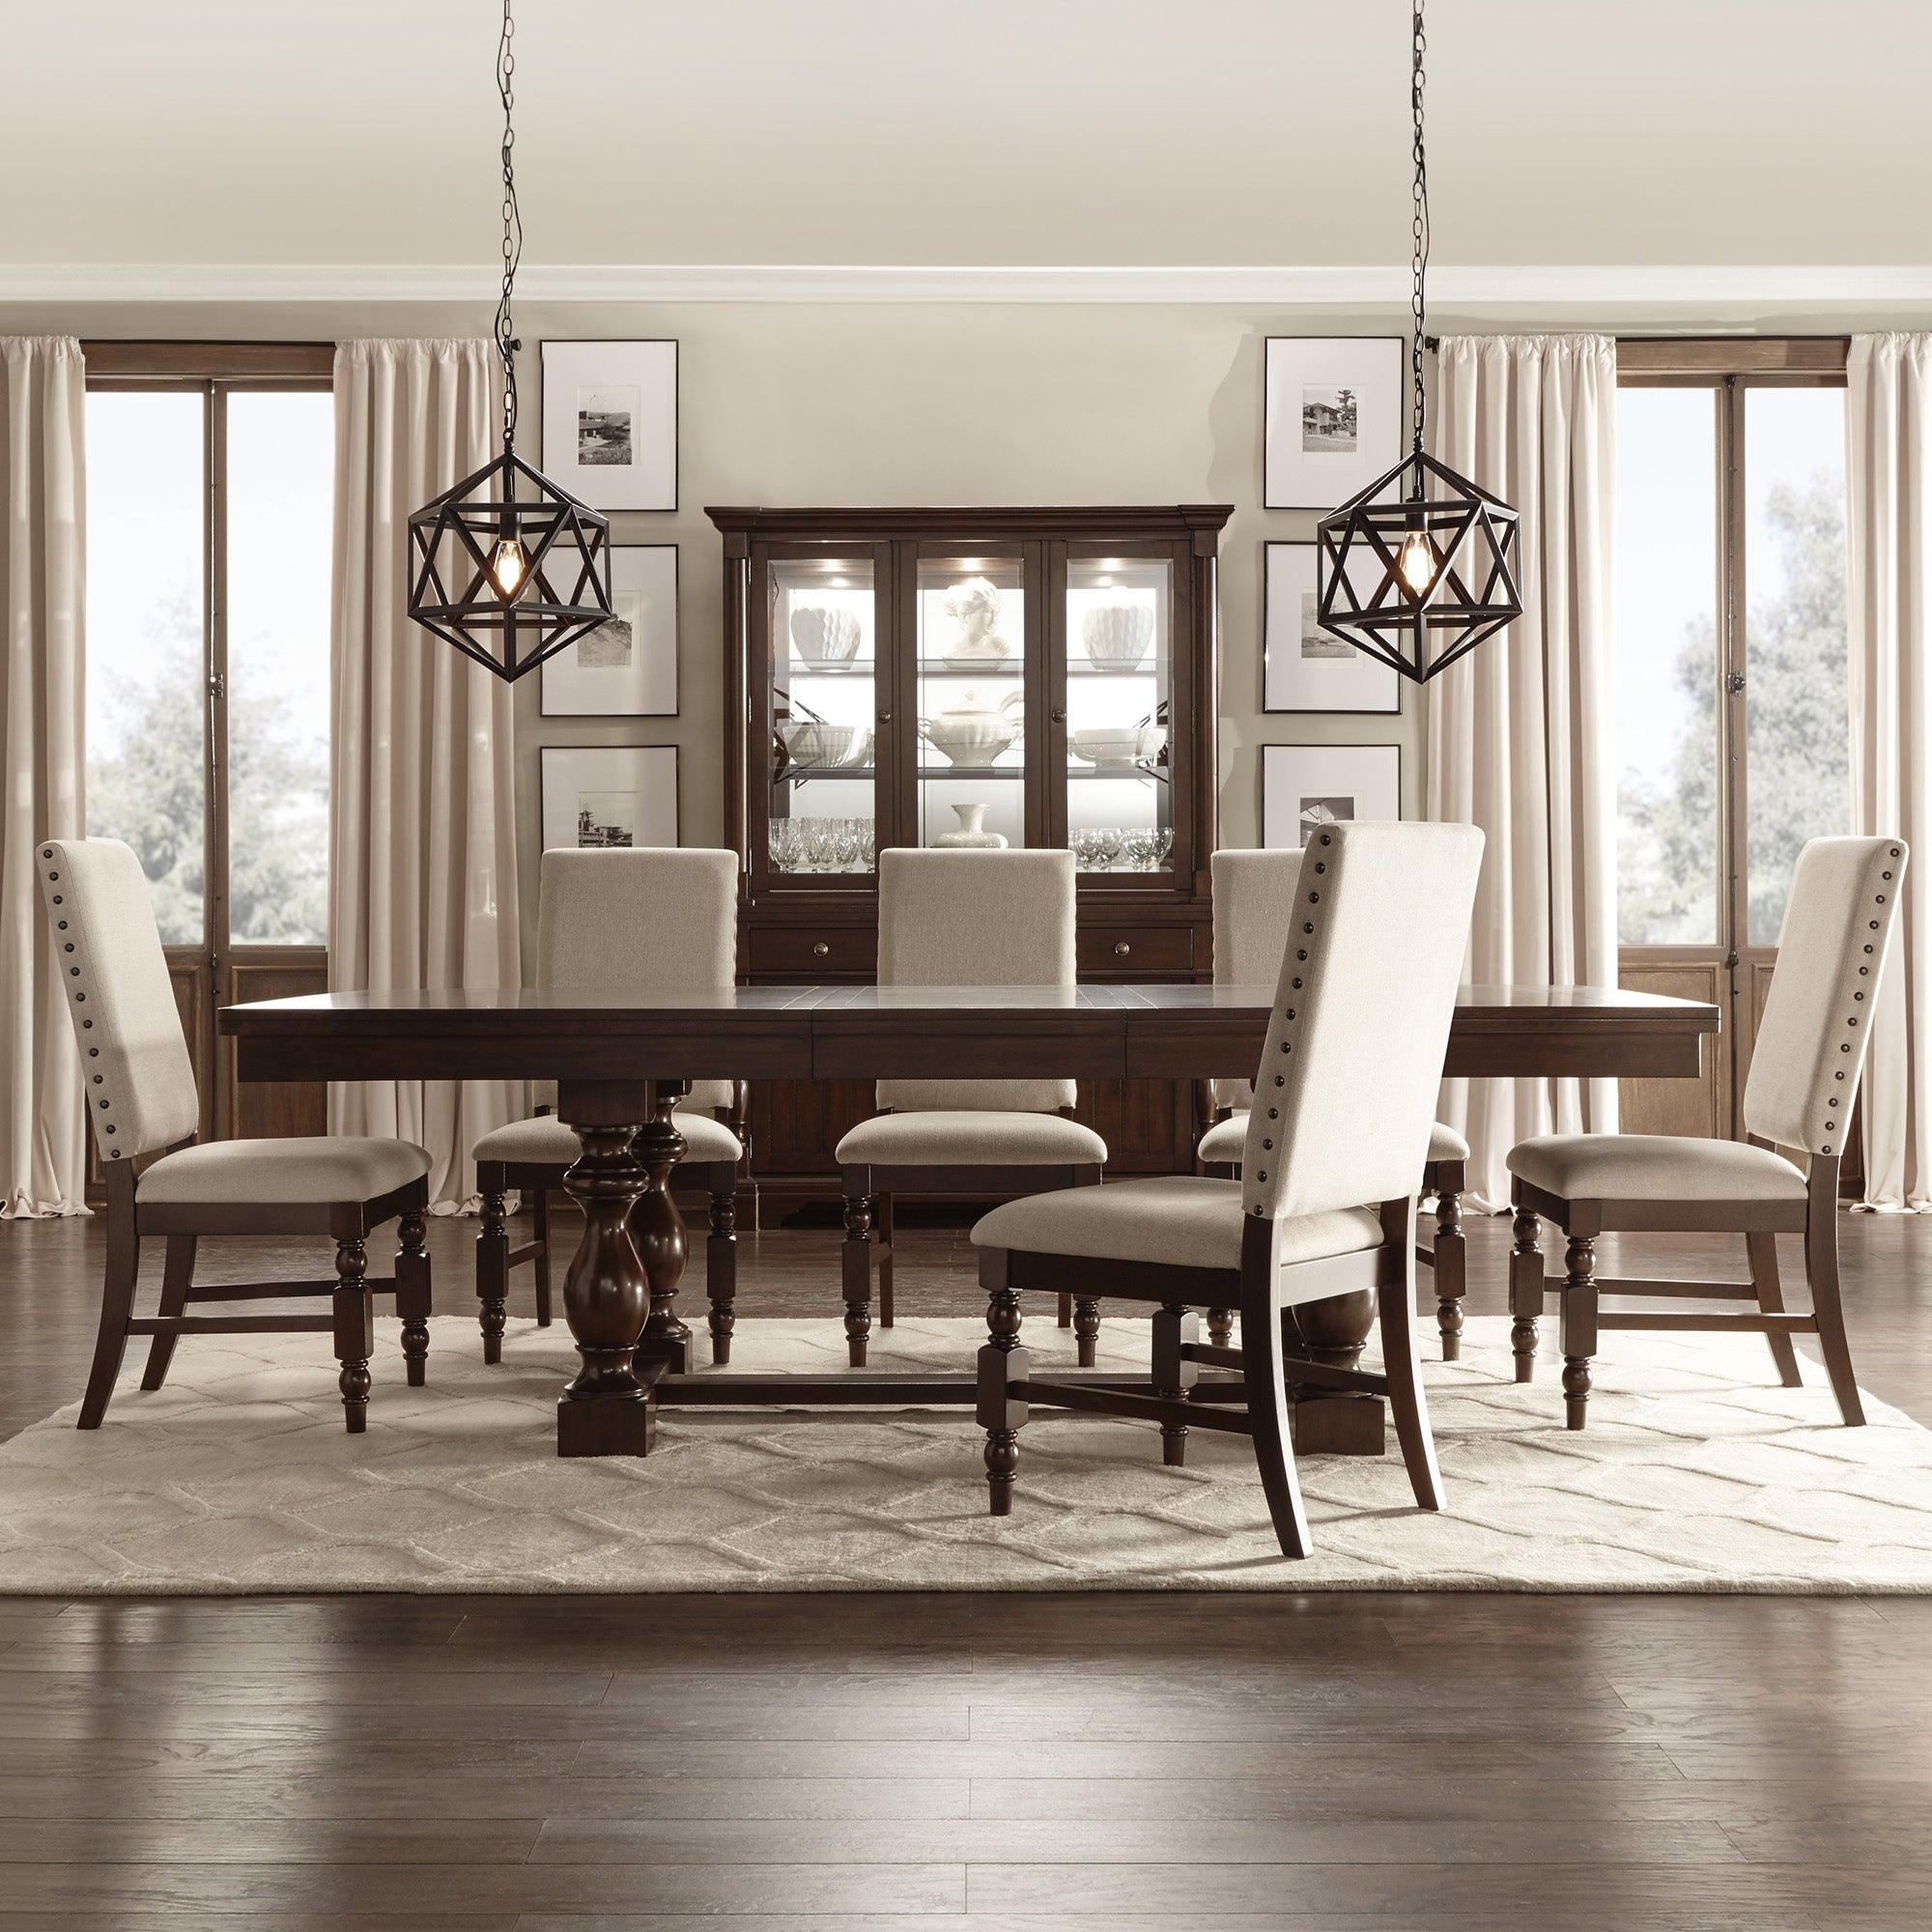 Awesome overstock dining room furniture ideas for B q dining room furniture